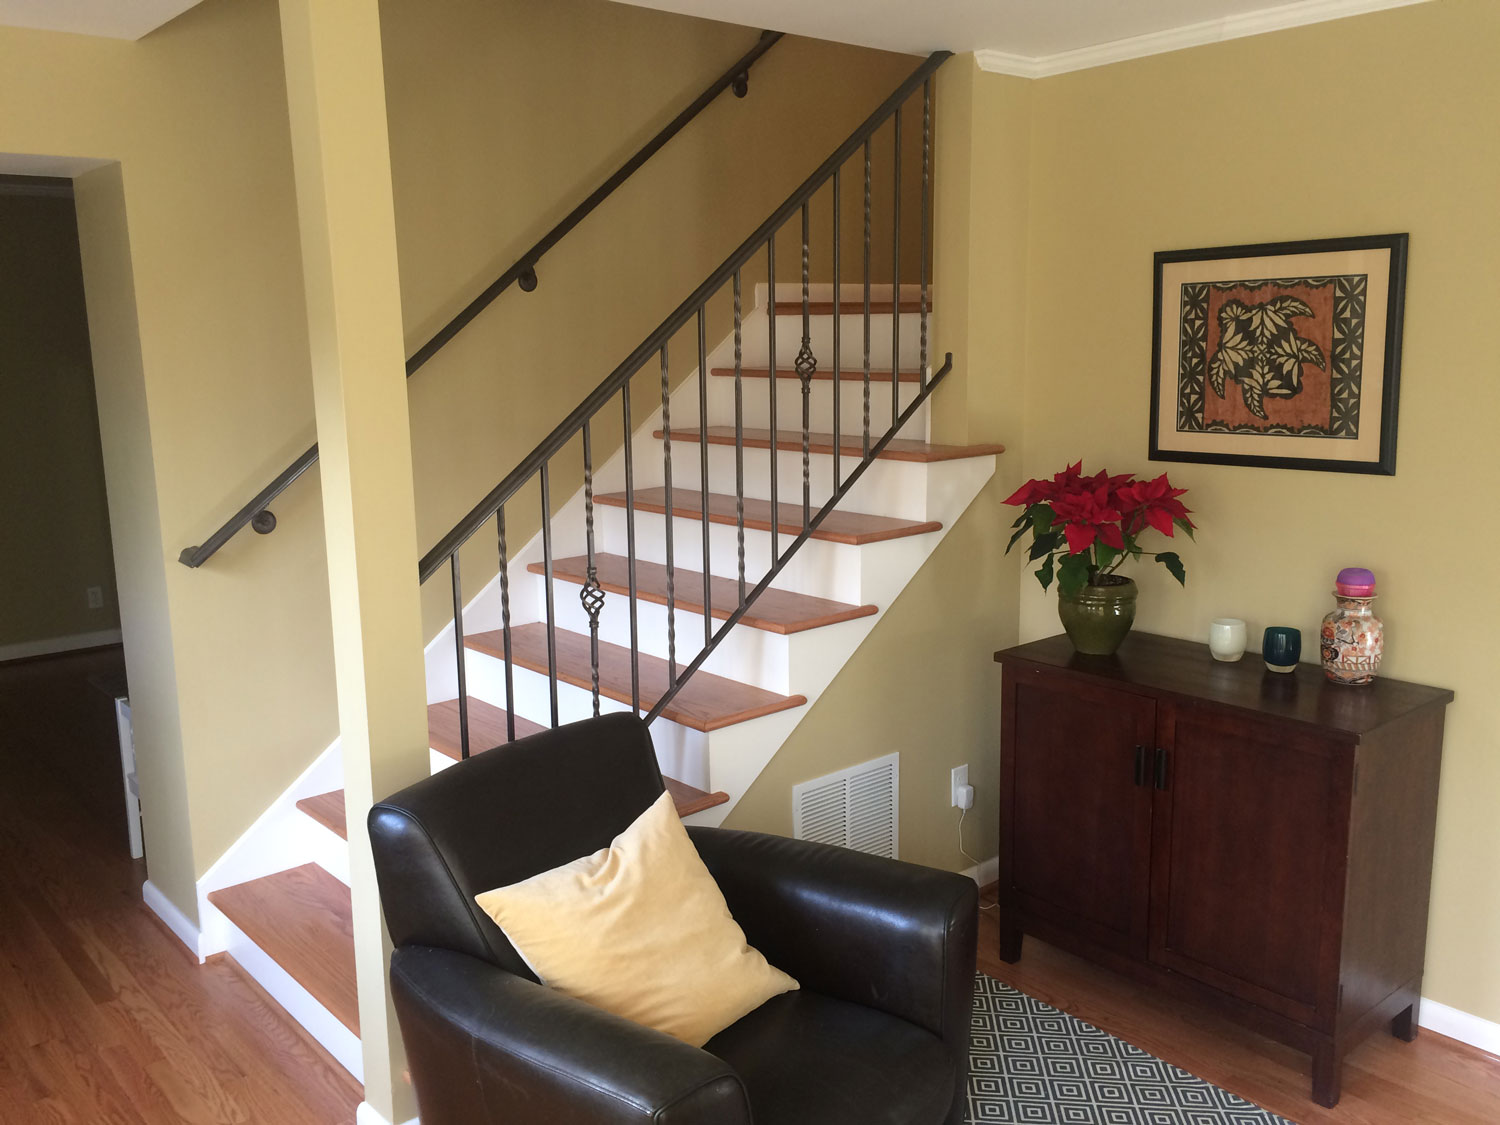 Traditional Handrail and Guardrail for Interior Stairs - Full Room - Seattle, WA